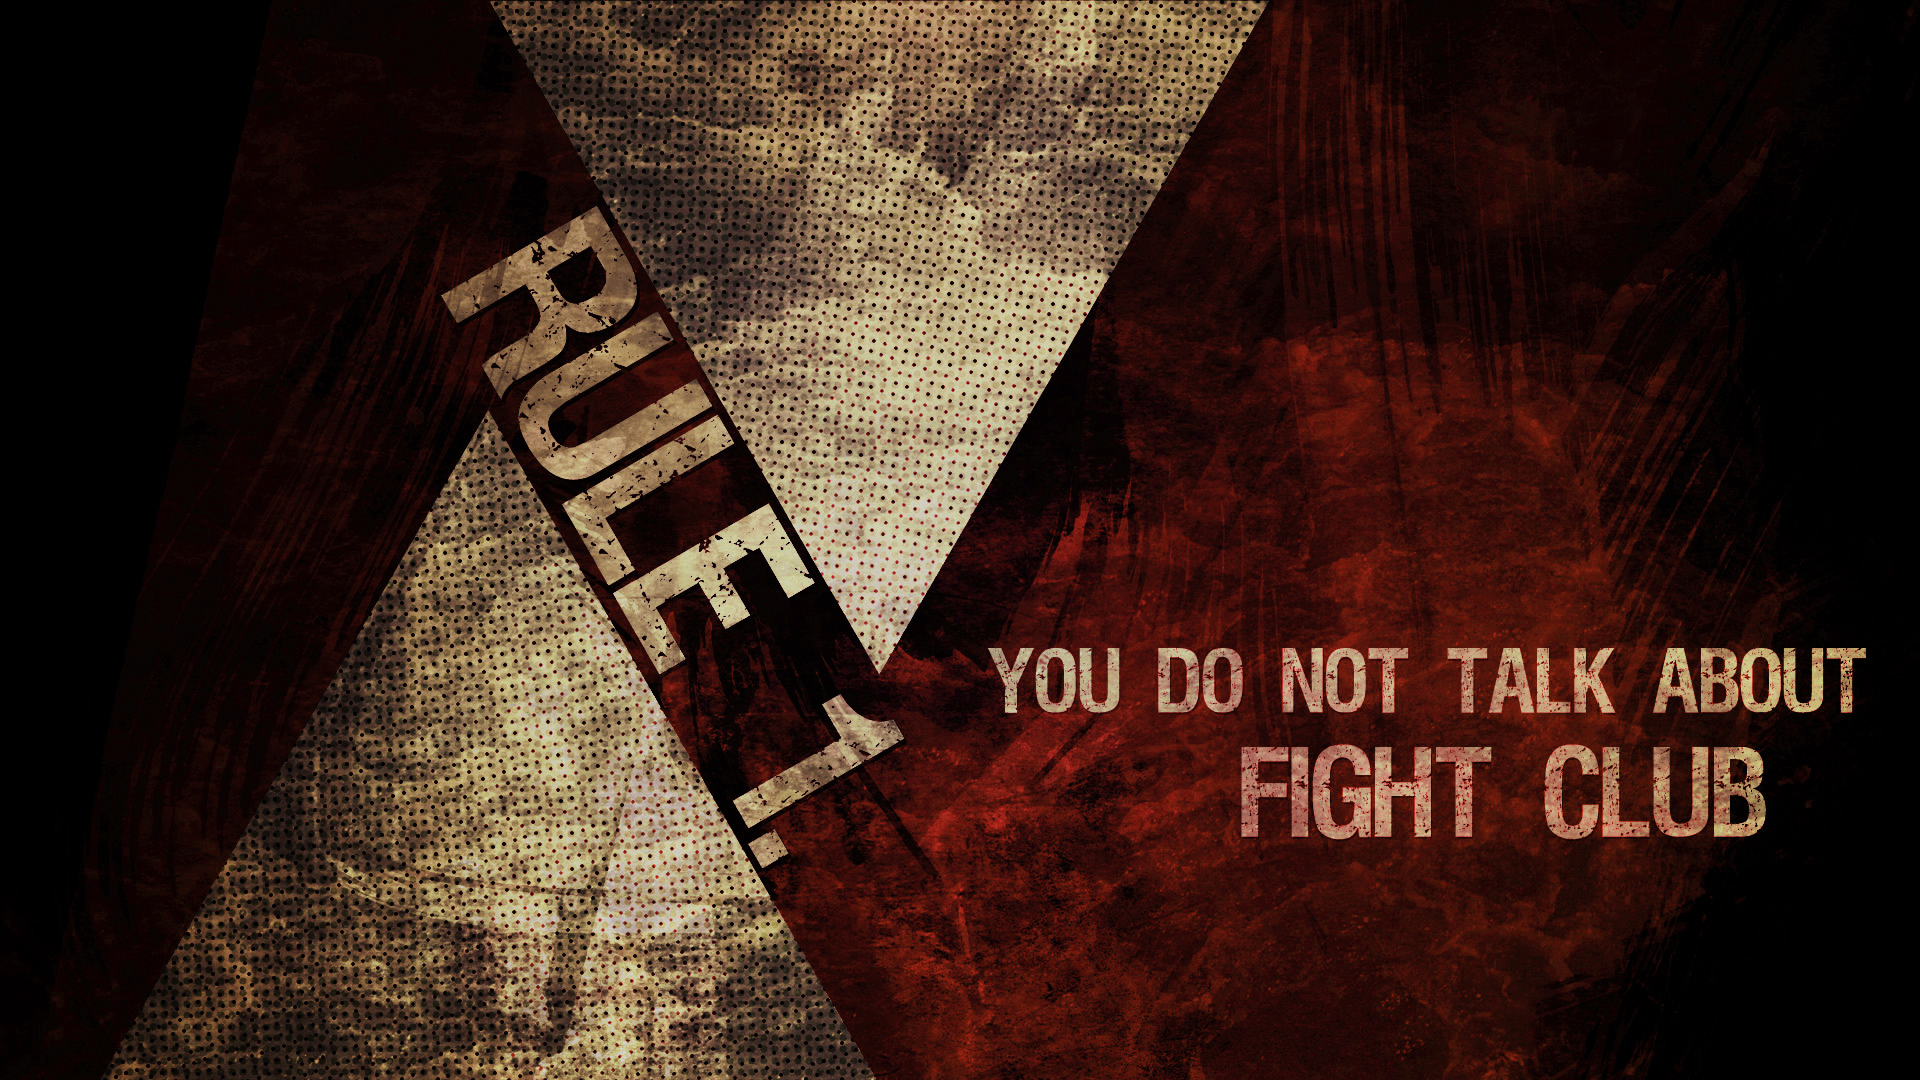 Fight Club Hd Wallpaper Background Image 1920x1080 Id